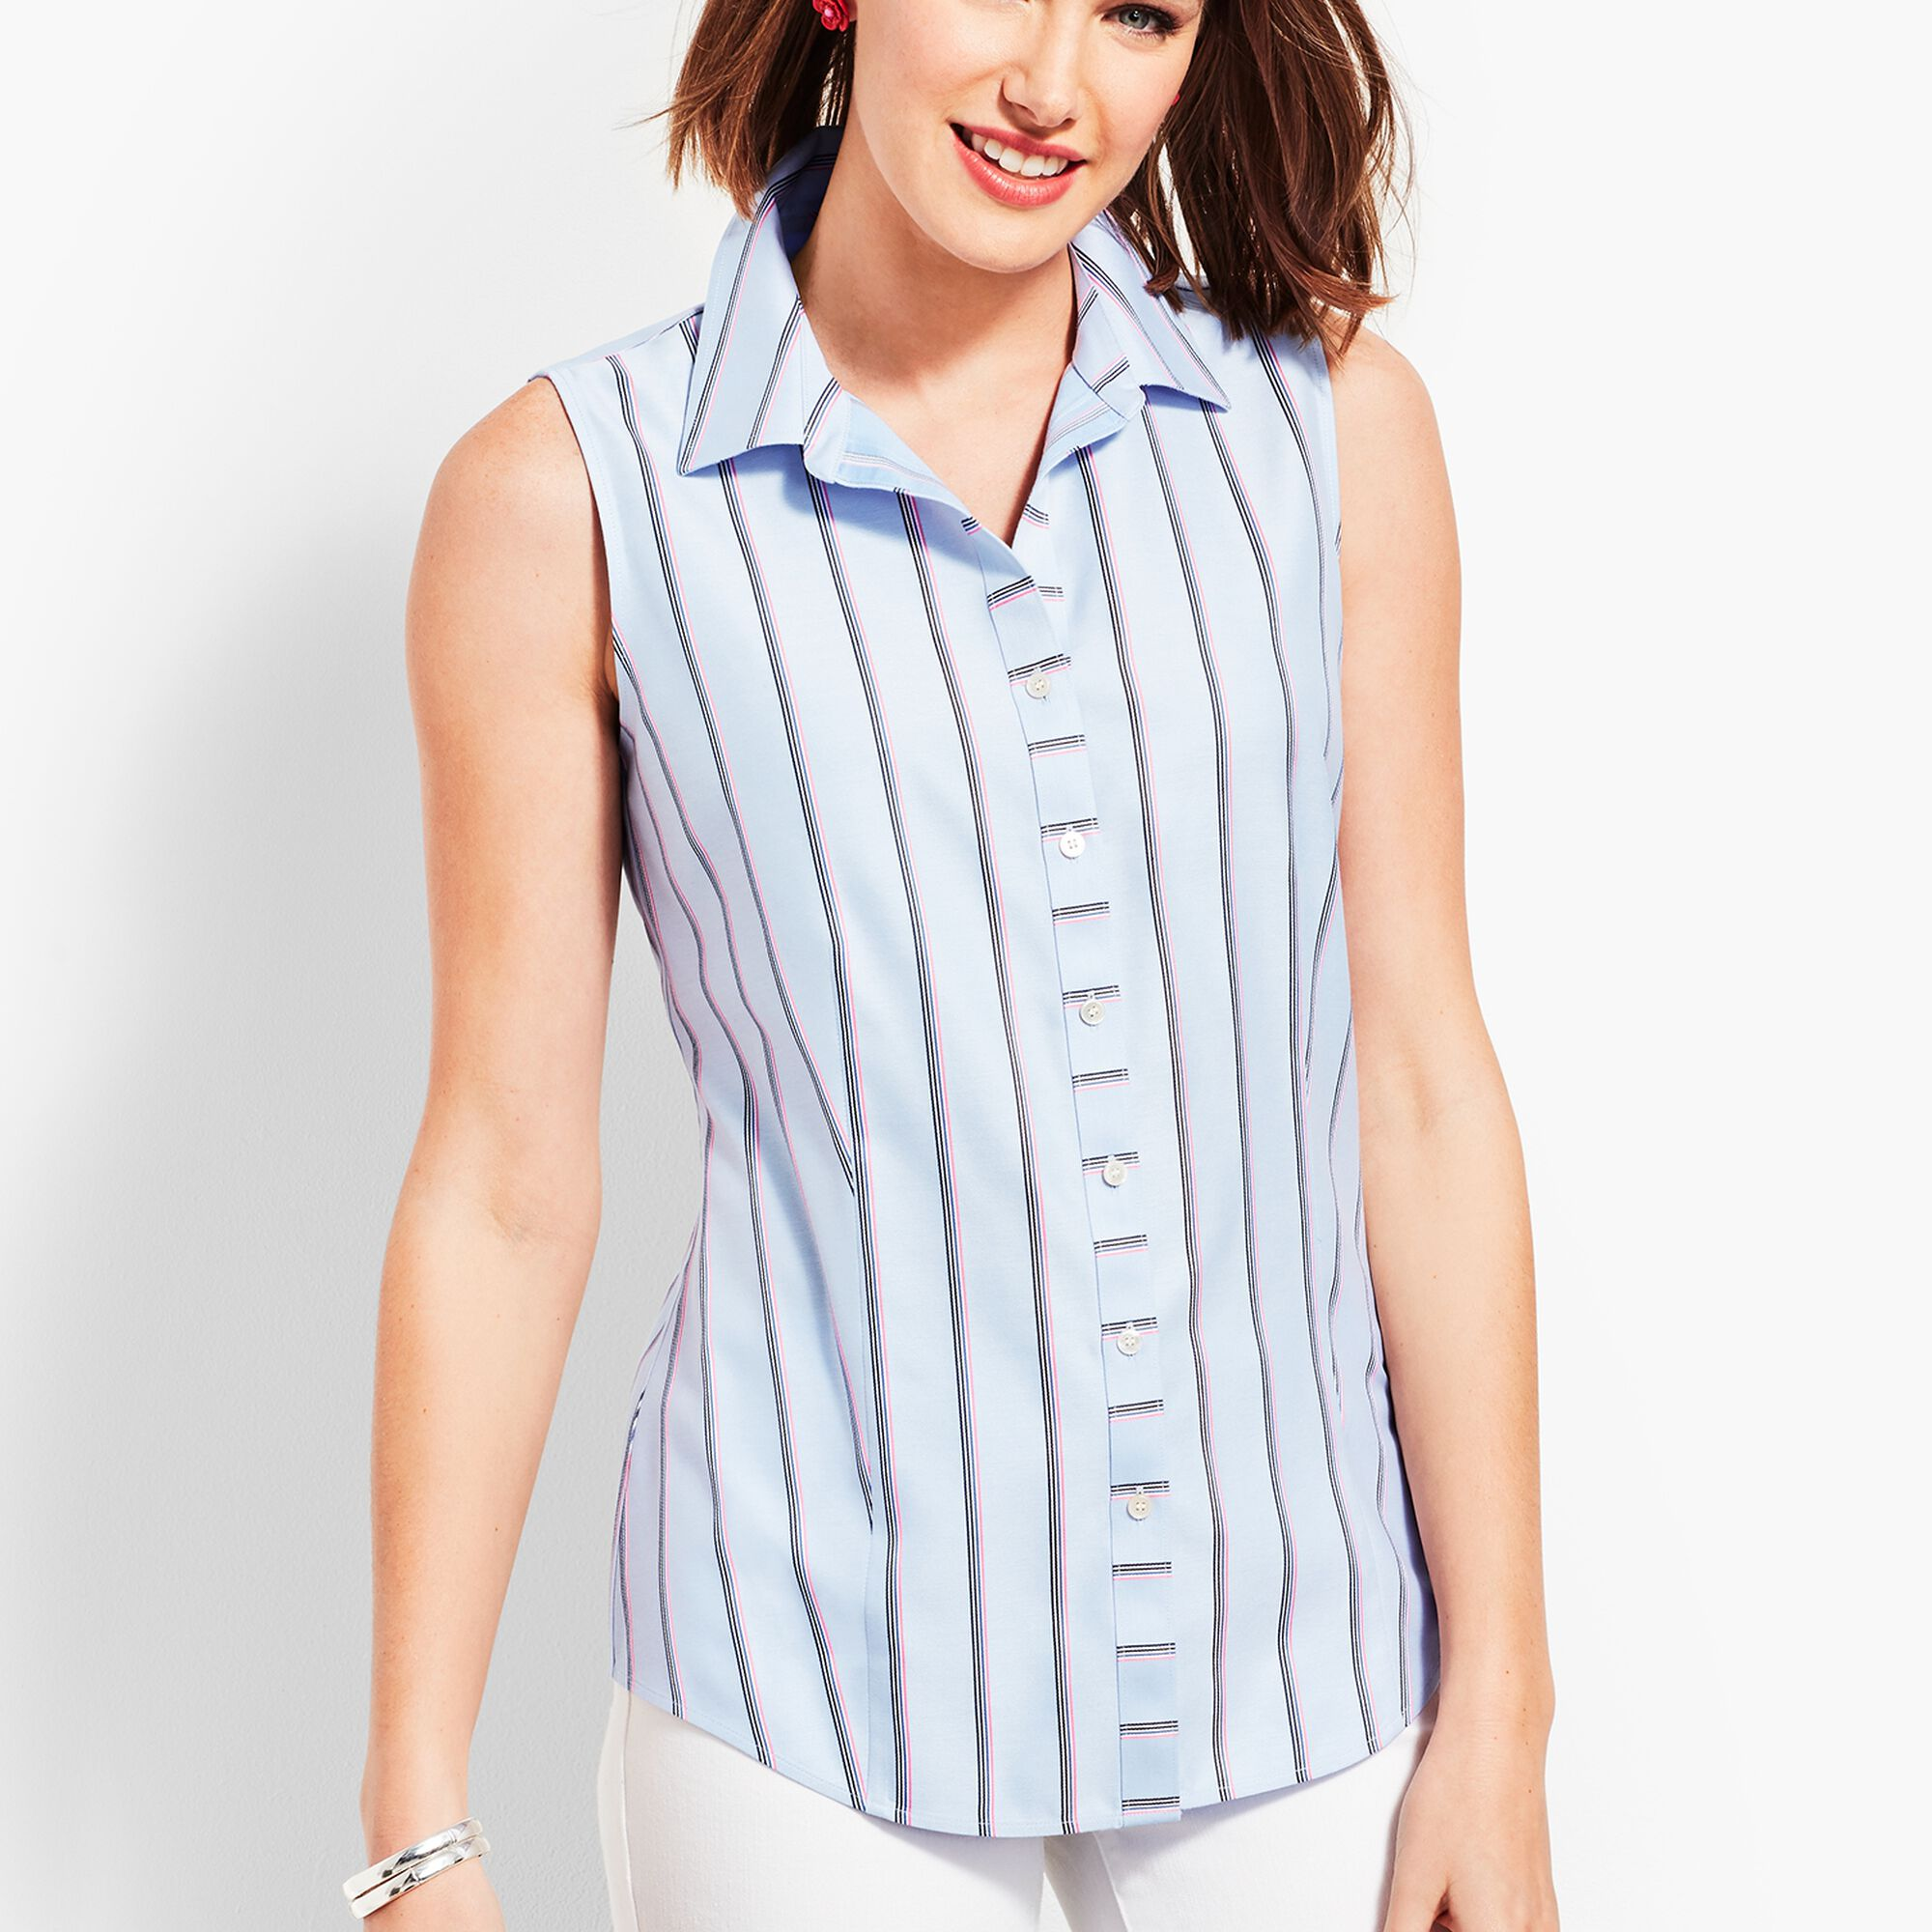 9cfd048fd135 Images. The Classic Sleeveless Button Front Shirt ...